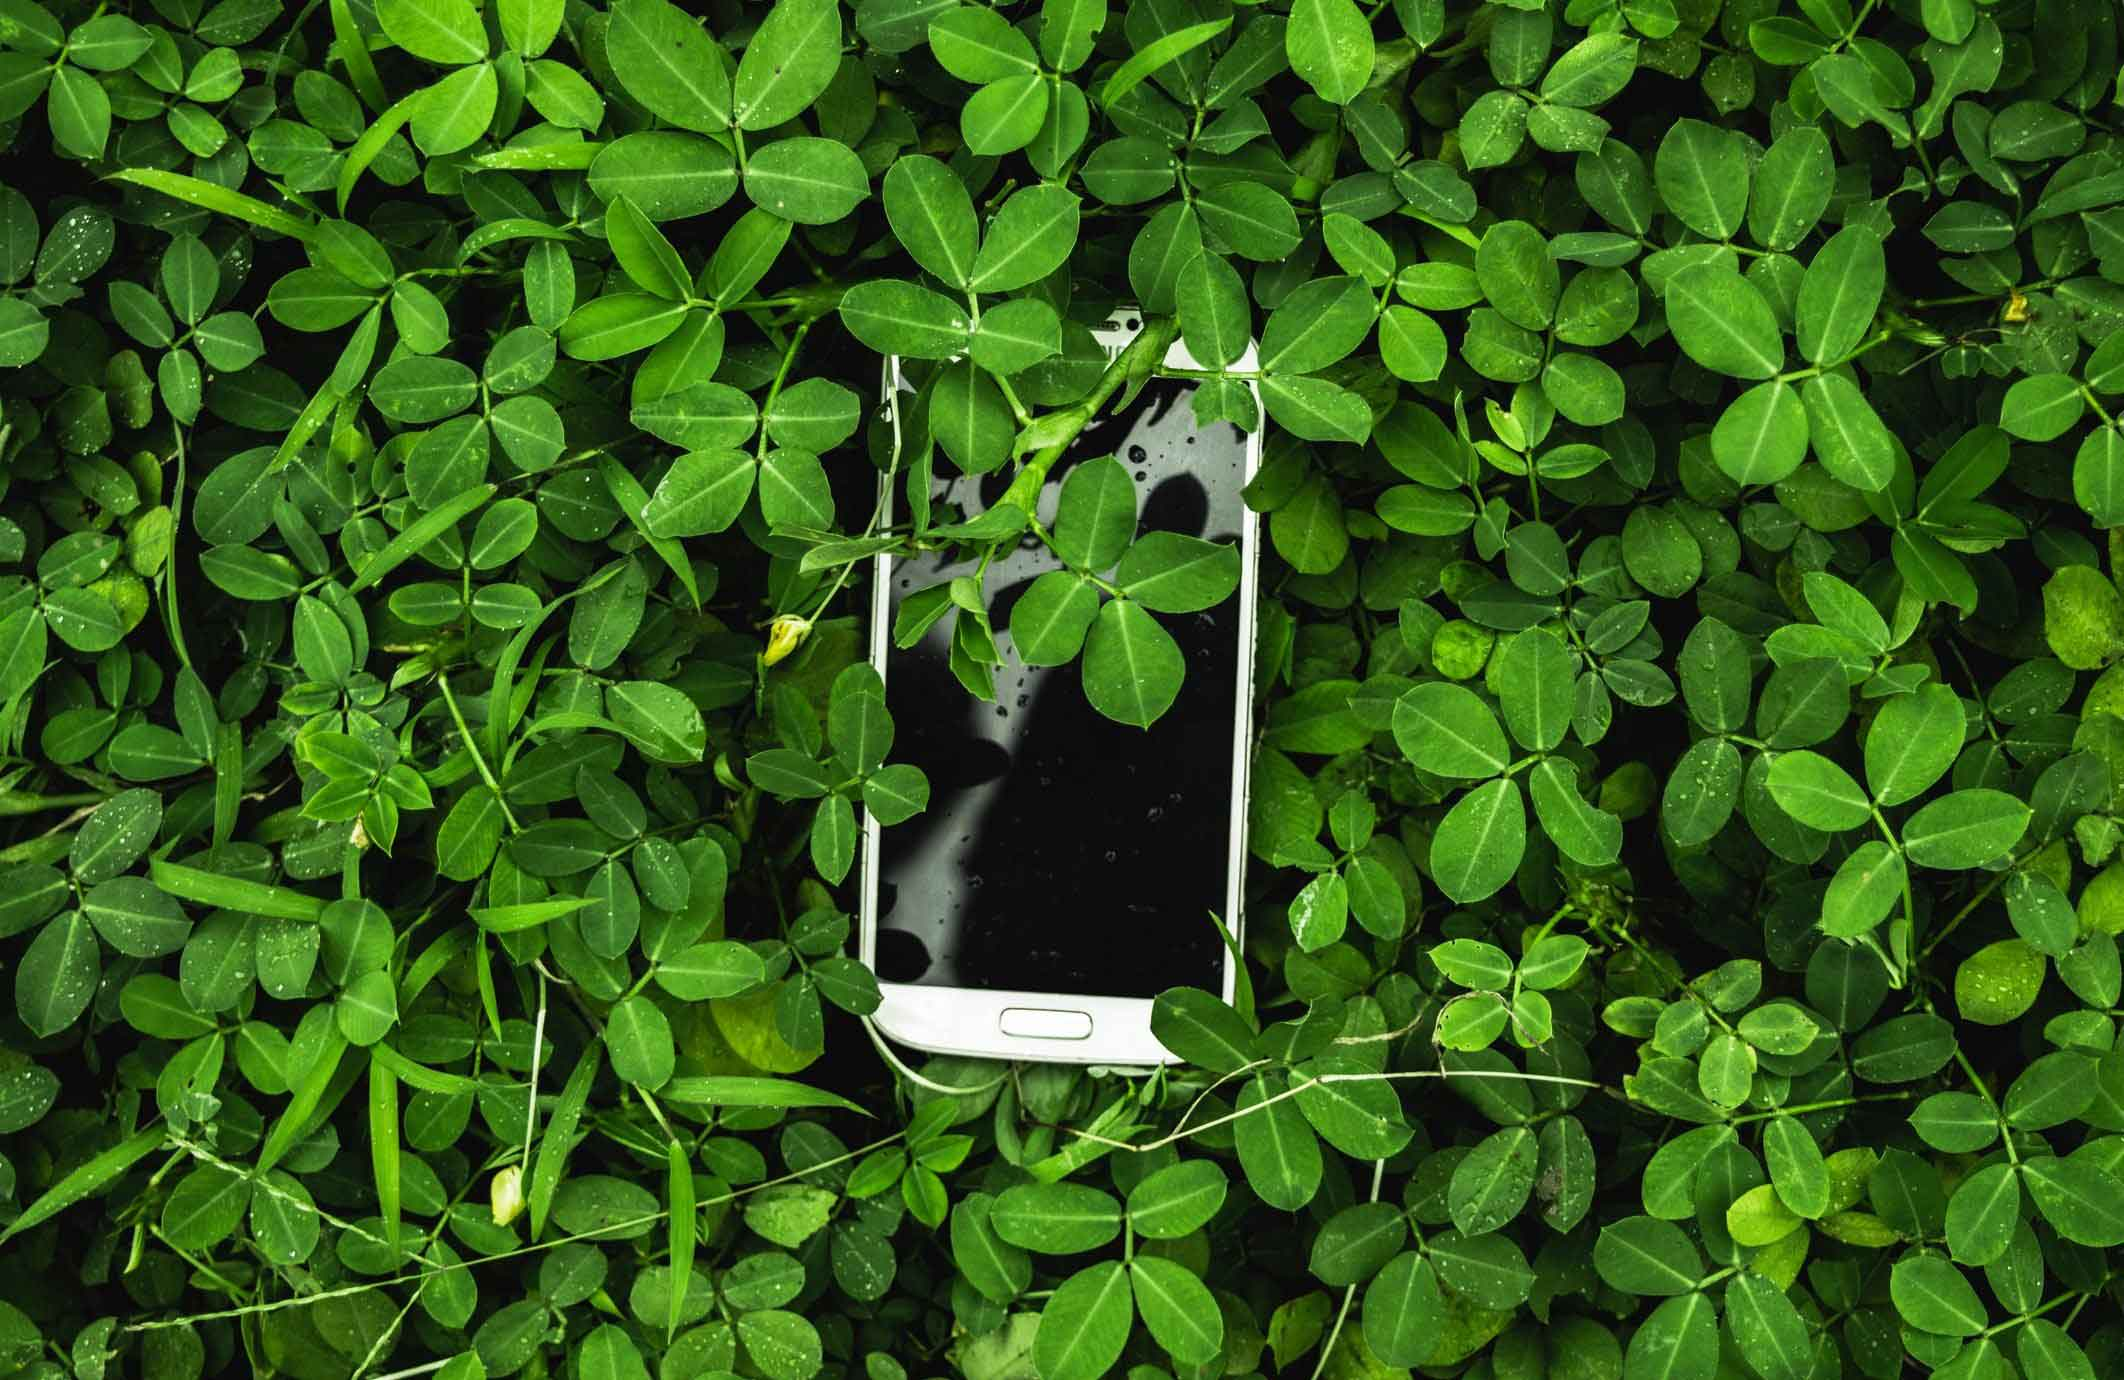 Abandoned or unsupported apps